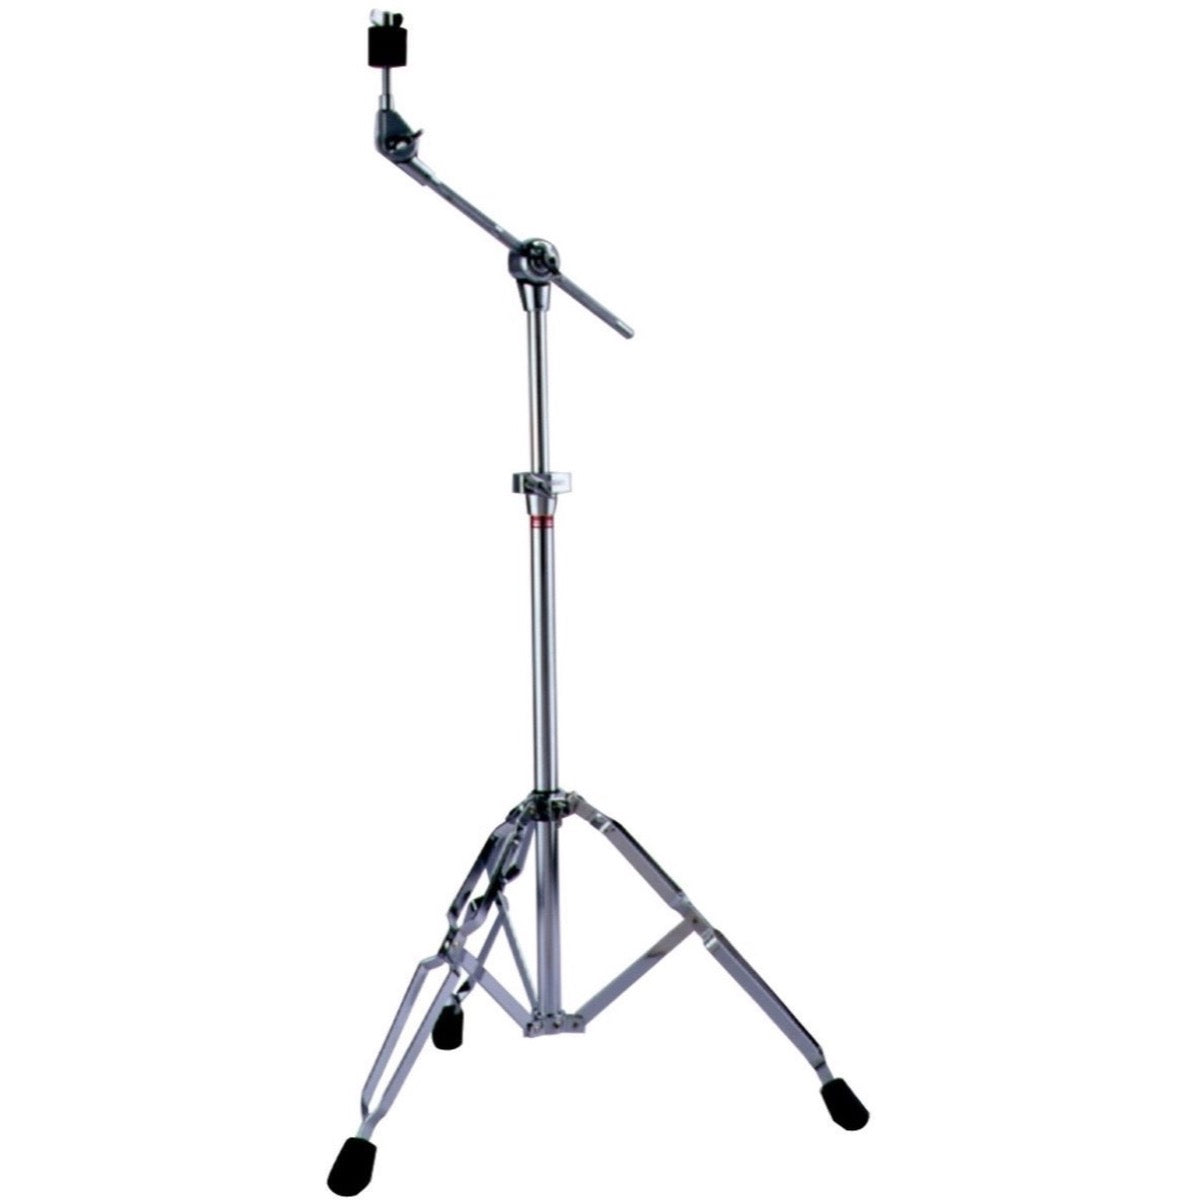 Ludwig L436MBS Cymbal Boom Stand